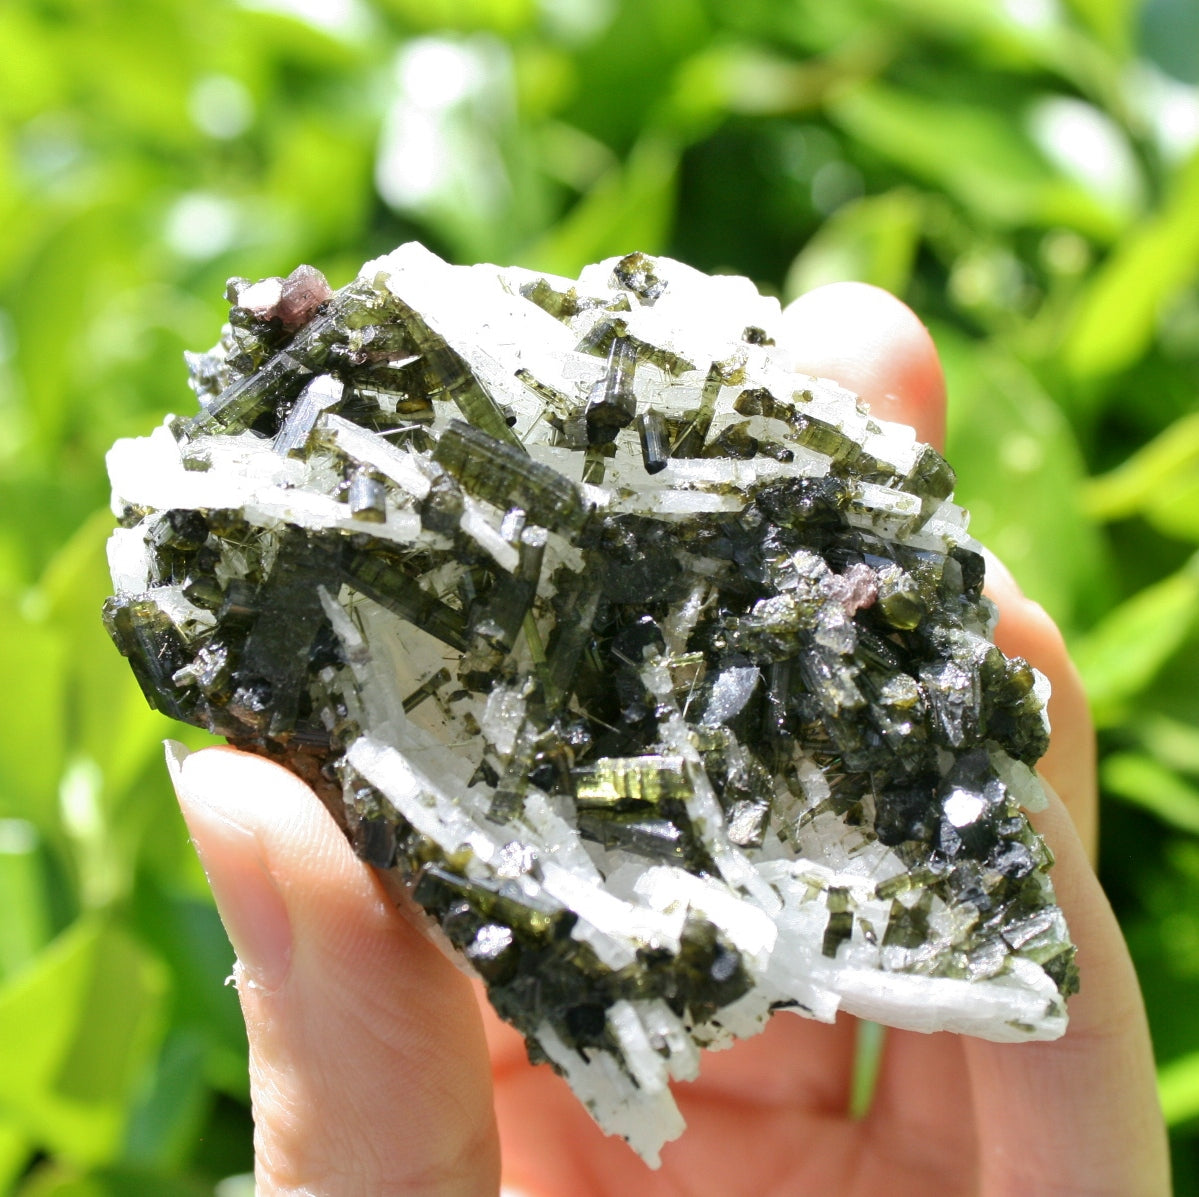 Green Tourmaline on Cleavelandite Cluster from Brazil, 74.5 grams